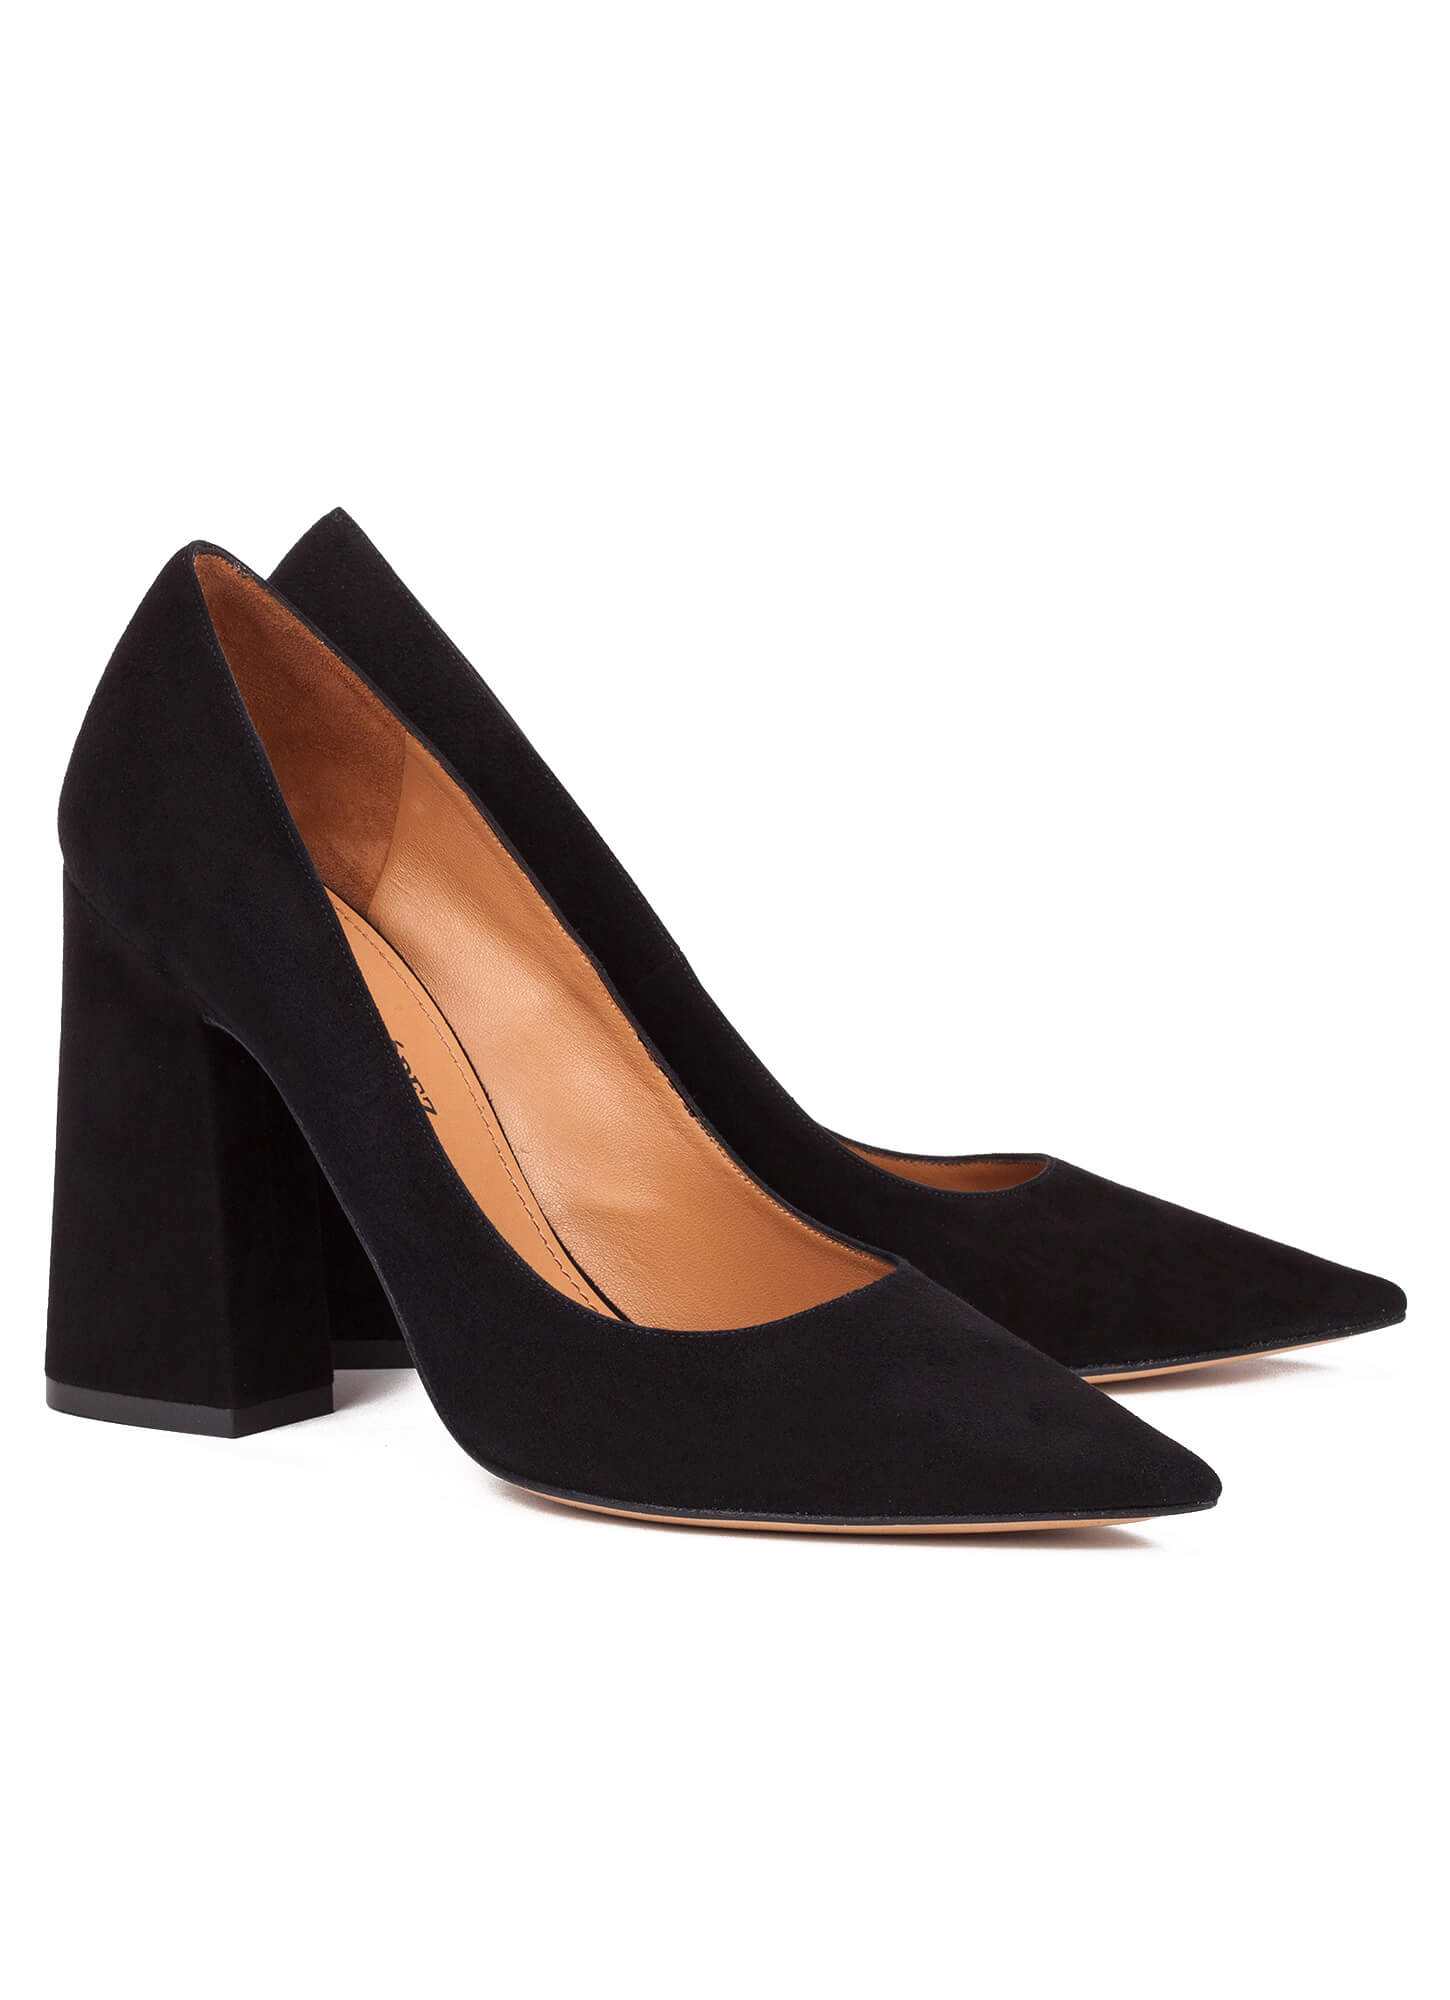 b2b02d6e257d High block heel pumps in black suede - online shoe store Pura Lopez ...